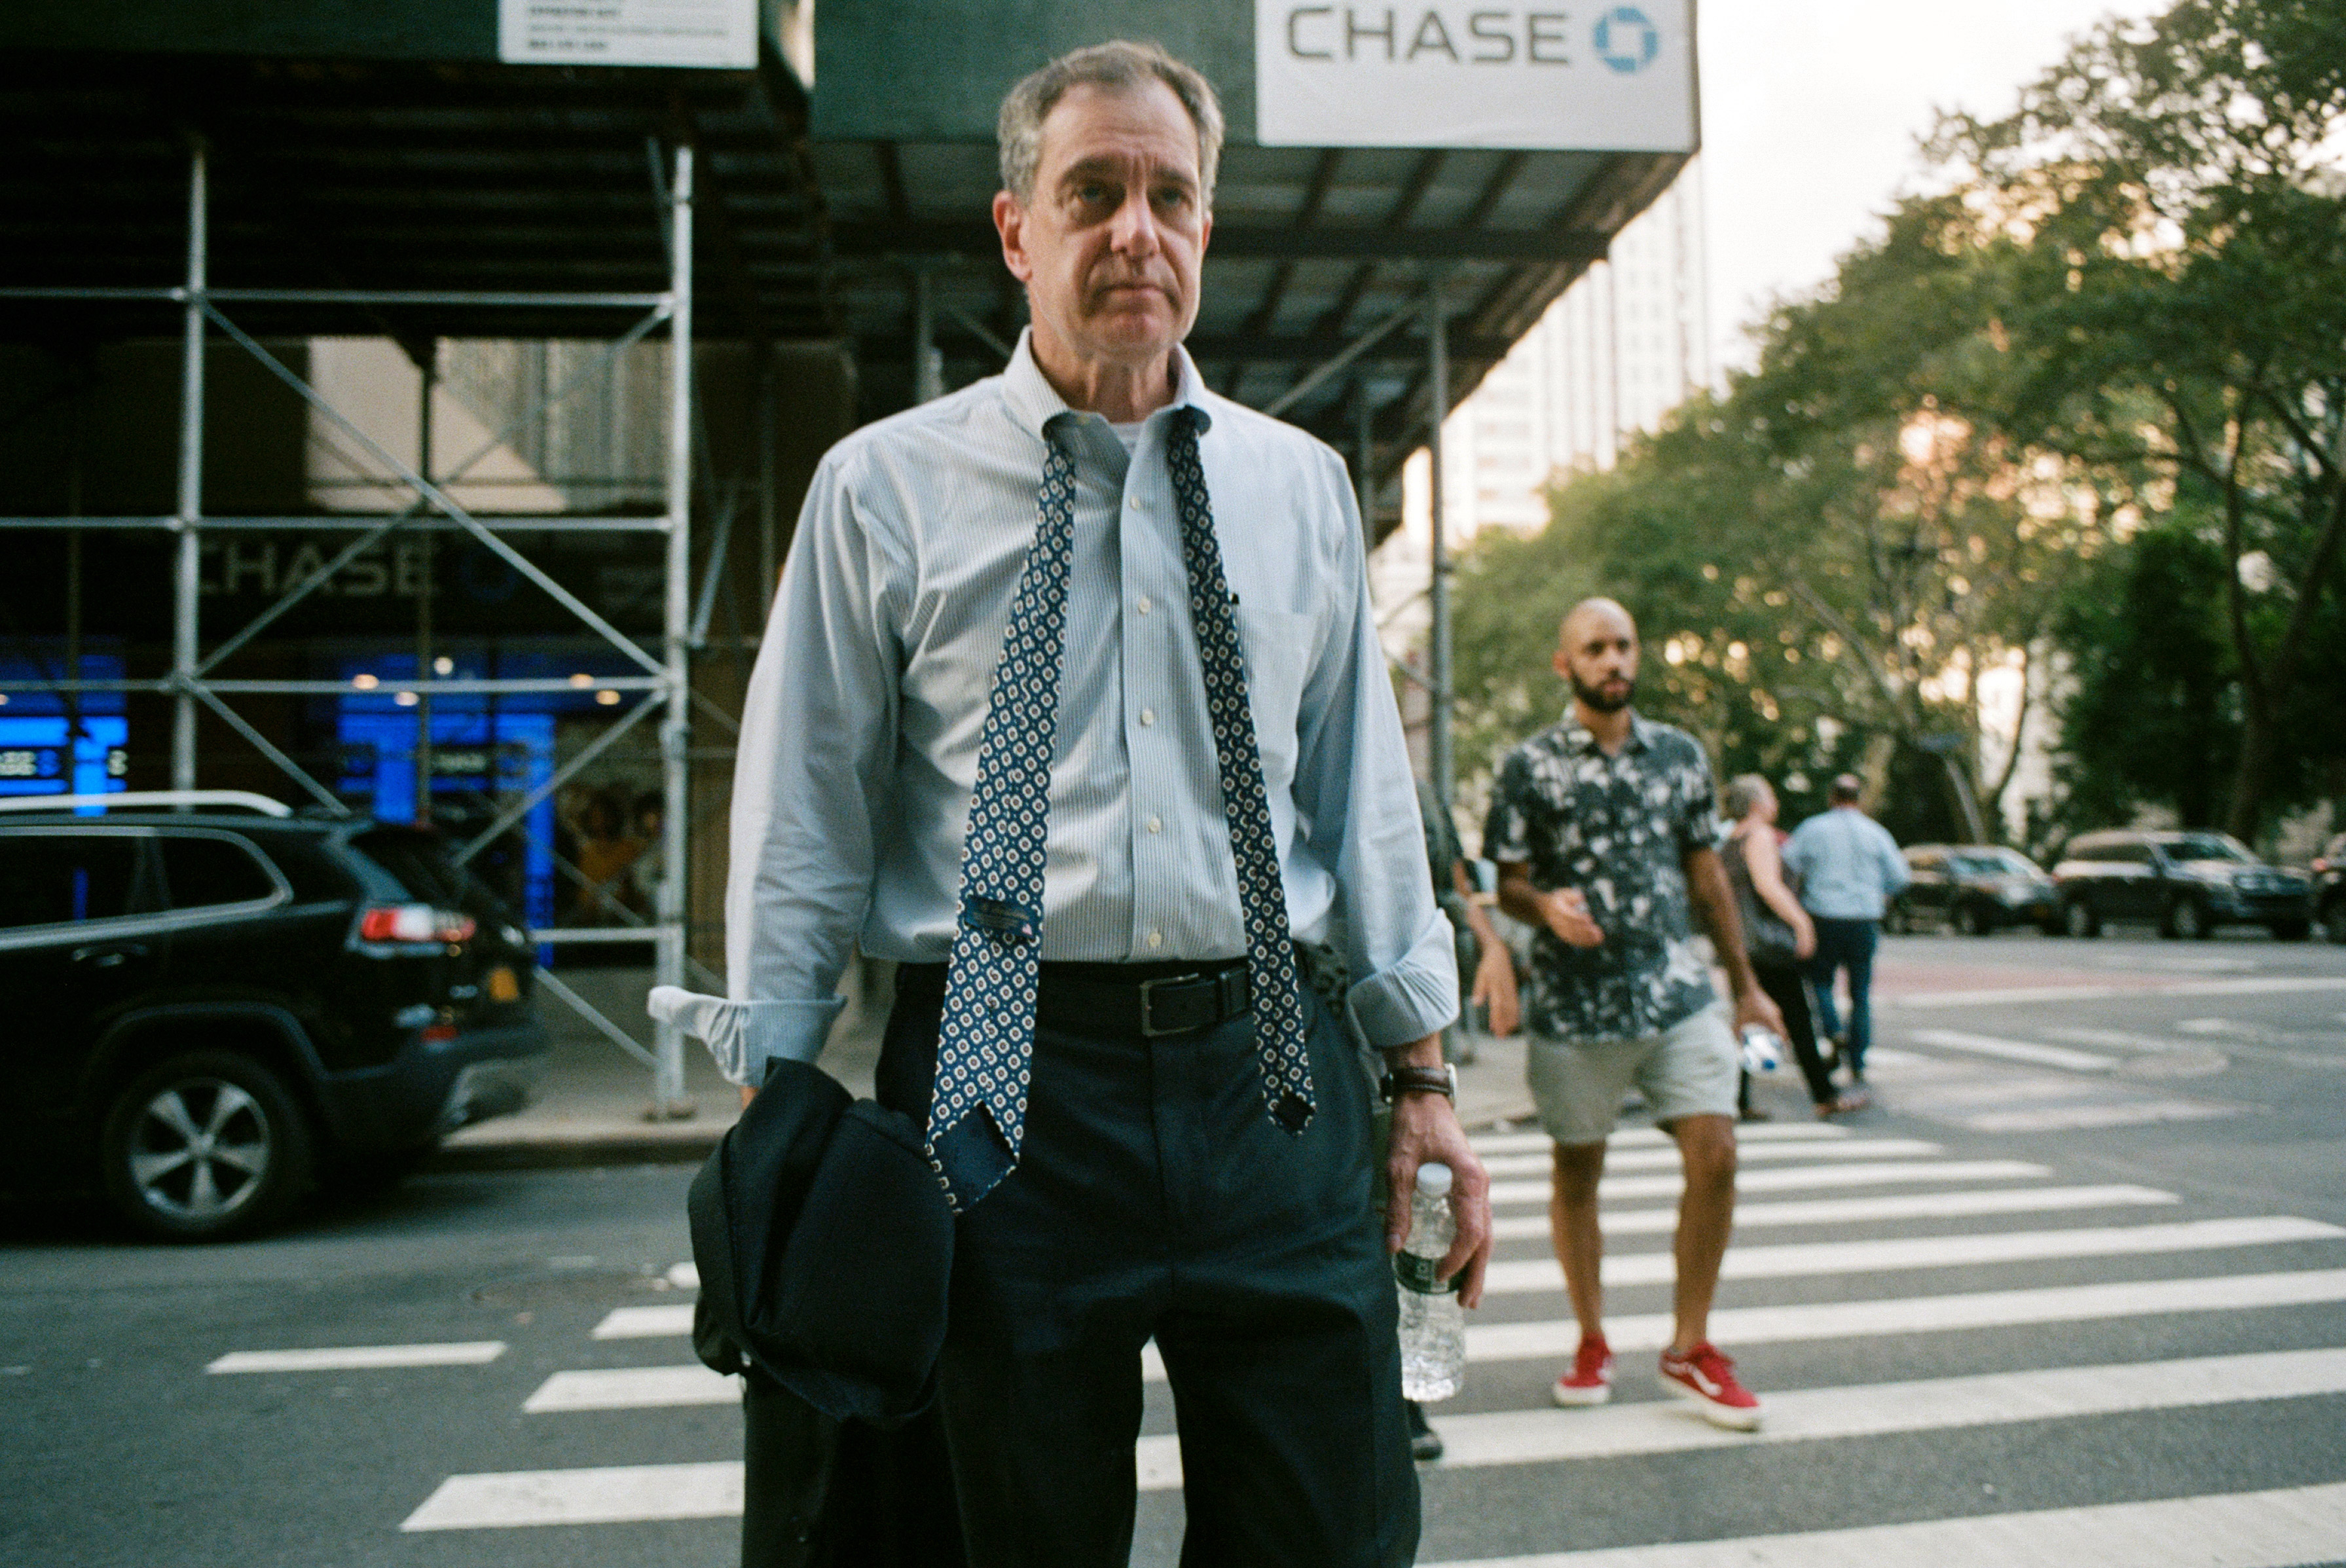 A man with his tie unfurled crosses the street in downtown Manhattan, Aug. 26, 2021.